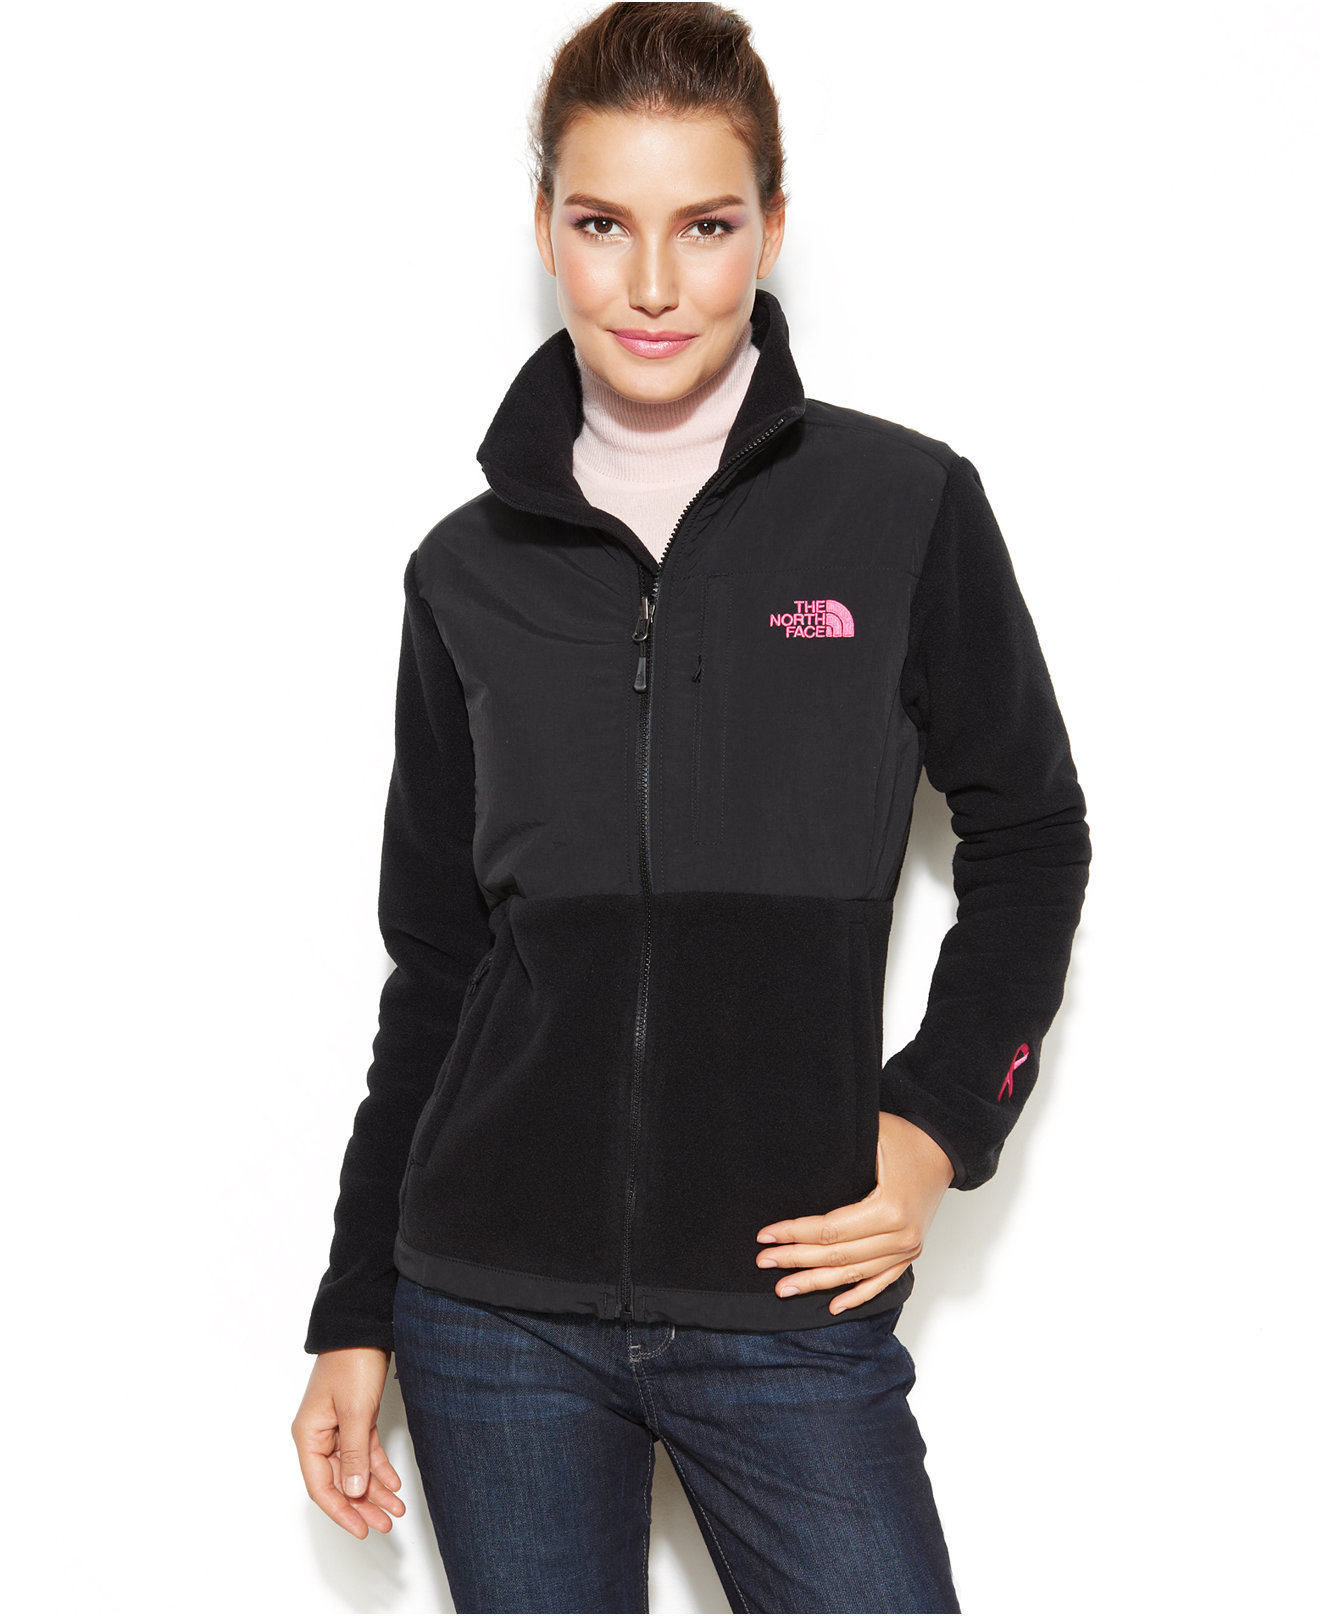 North Face Women Jacket Northface Discount North Face Jacket Cheapest